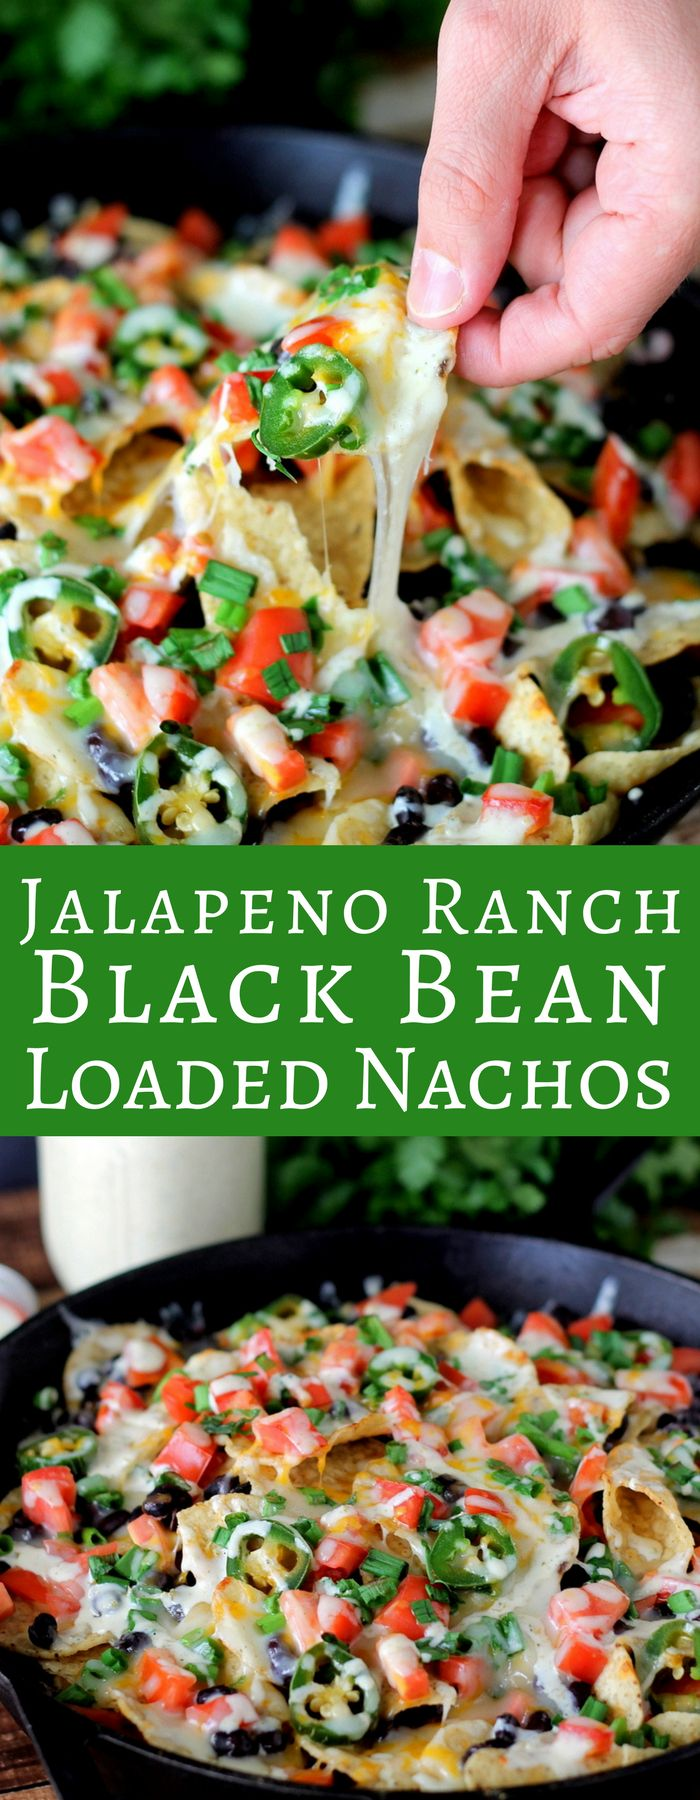 Jalapeno Ranch Black Bean Loaded Nachos are loaded with fresh ingredients and homemade spicy jalapeno ranch. In less than 20 minutes you have the perfect dish!